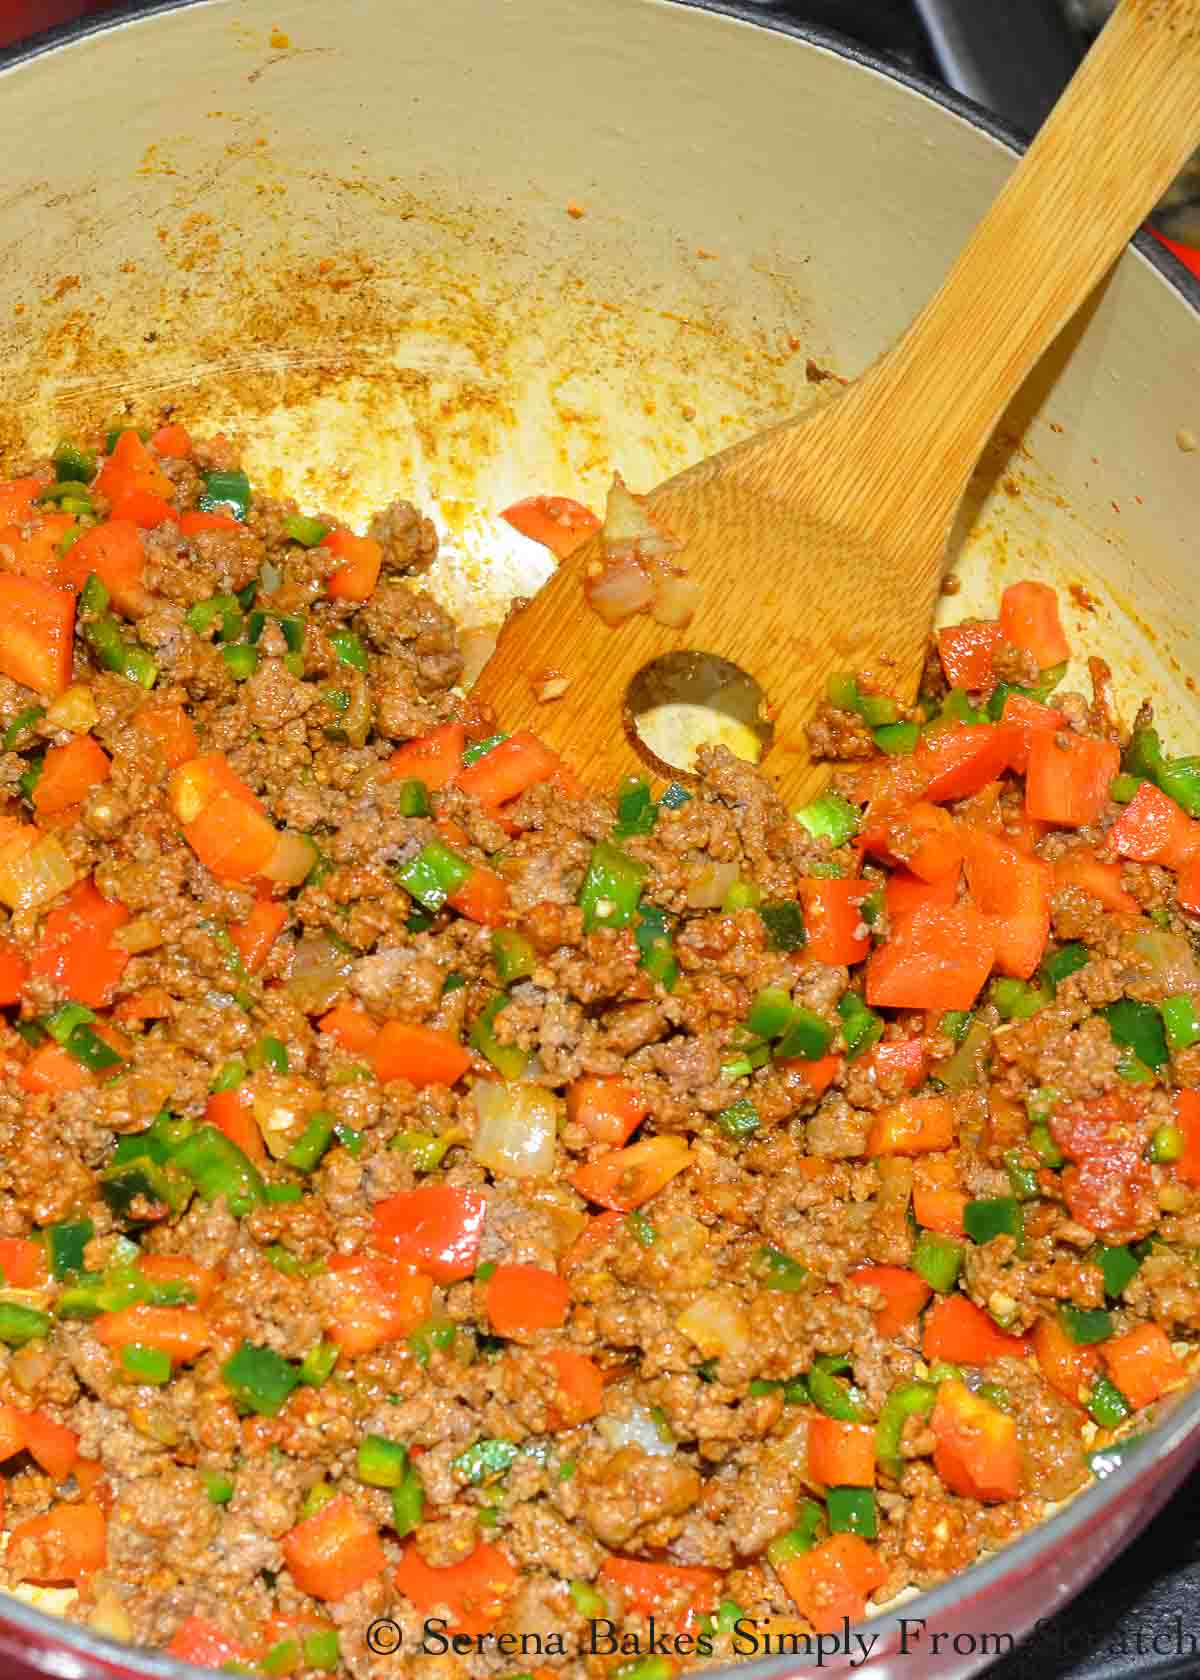 Cooked Ground Beef and Peppers in a large pot.